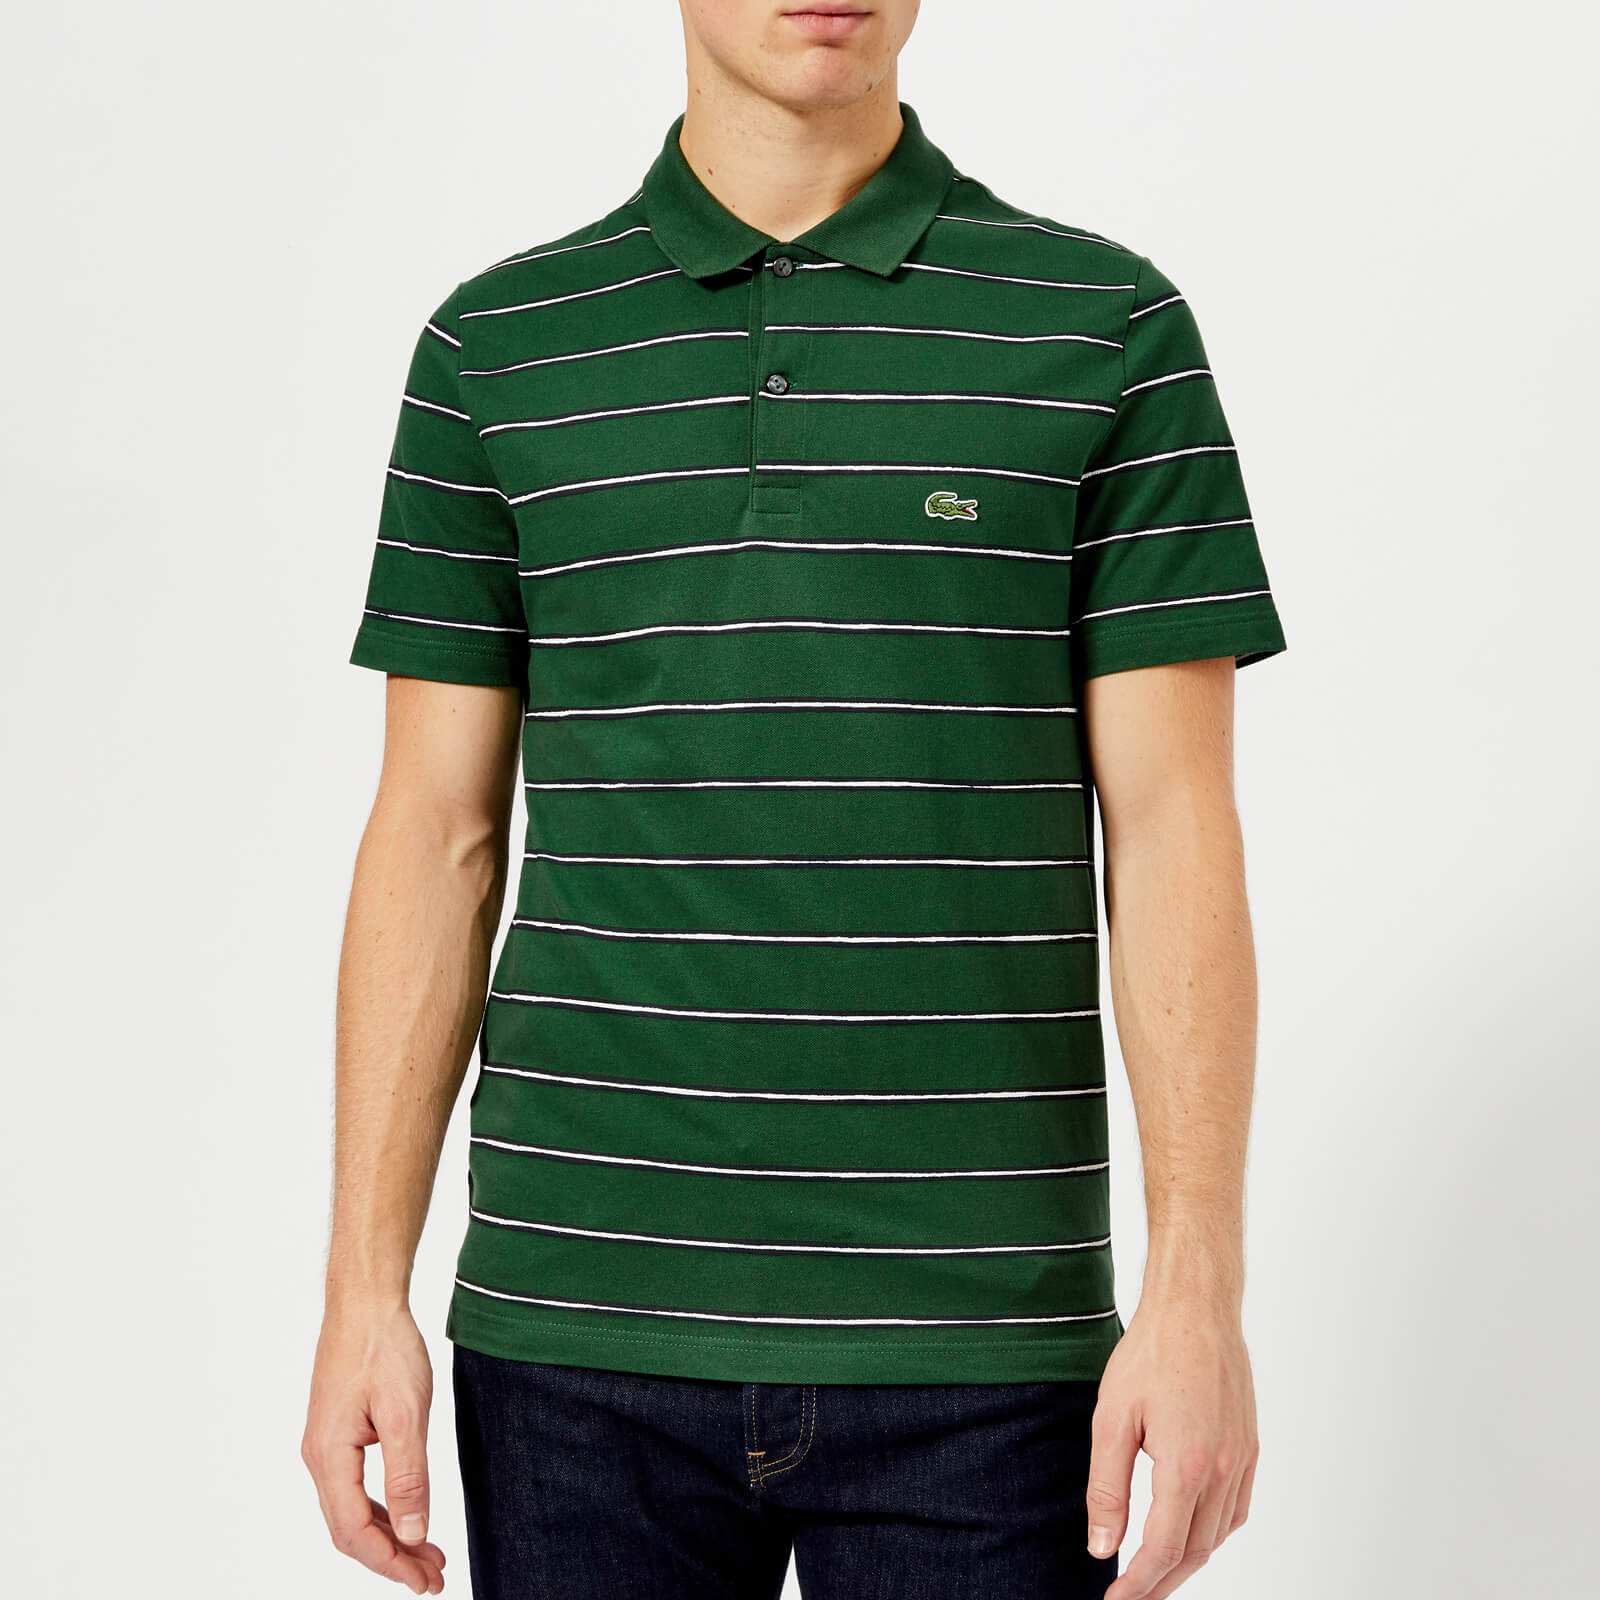 8e990b0ce80 Green And White Hooped Polo Shirt | Top Mode Depot